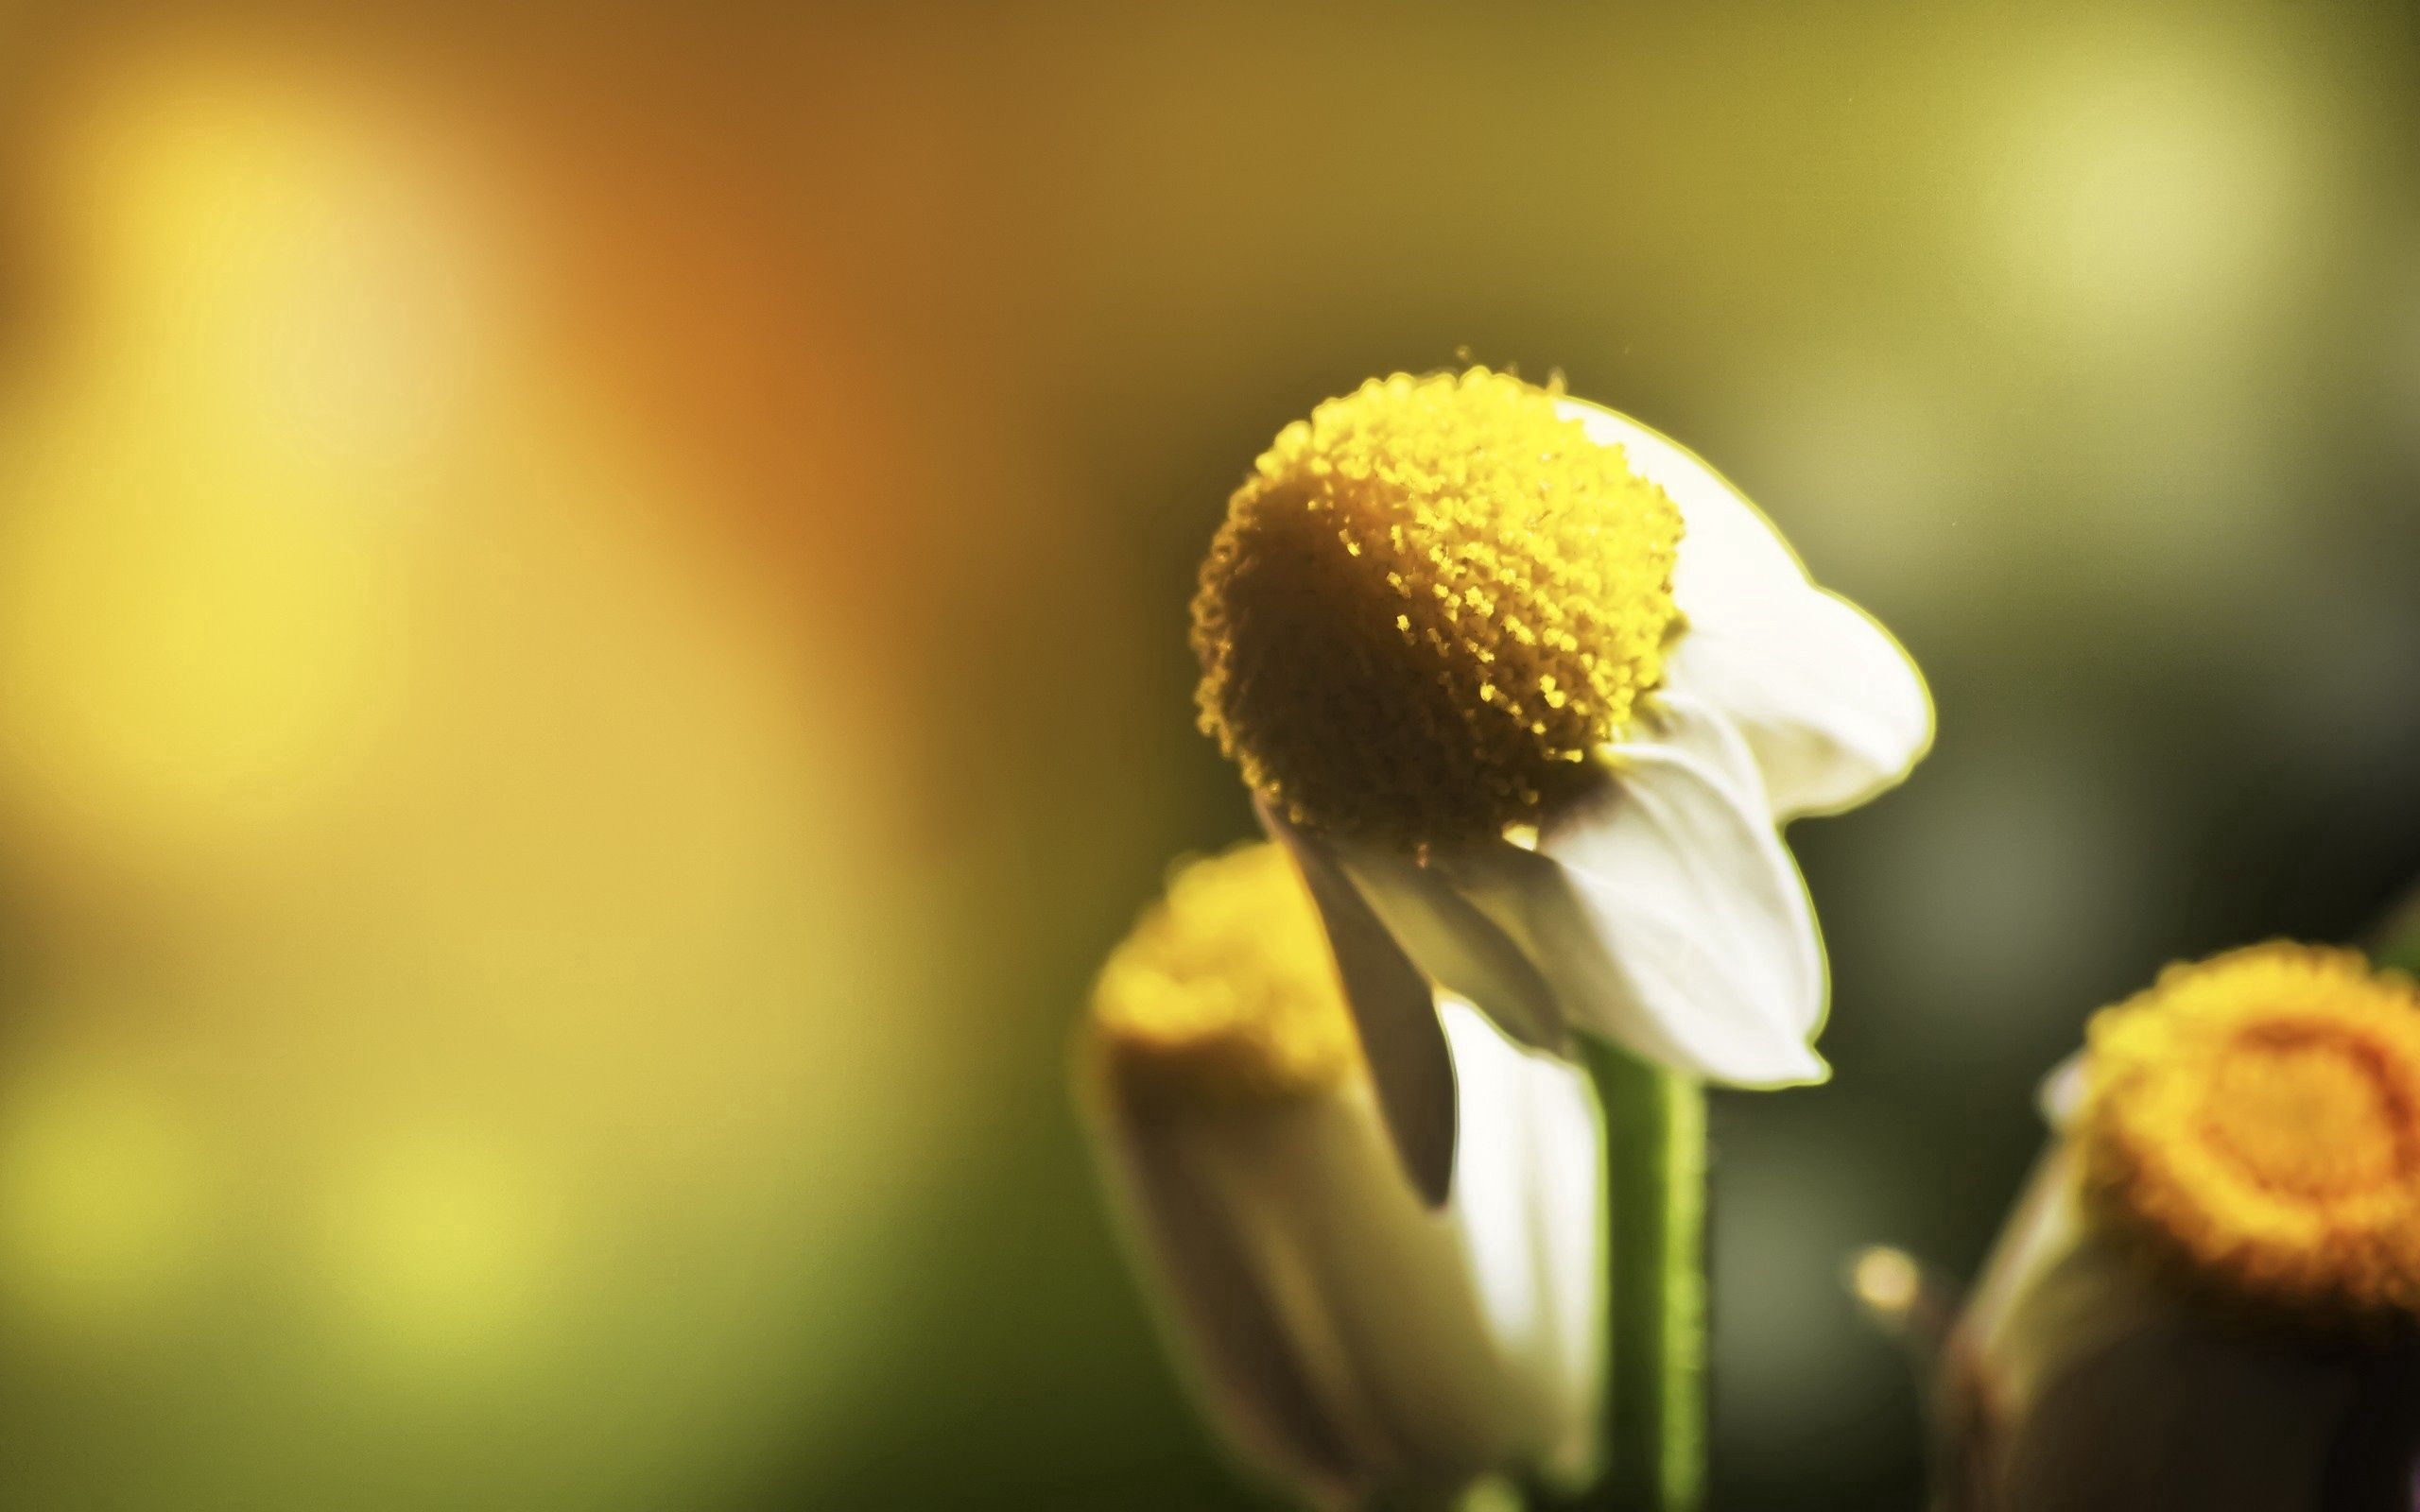 153533 download wallpaper Macro, Chamomile, Camomile, Flower, Petals, Blur, Smooth screensavers and pictures for free